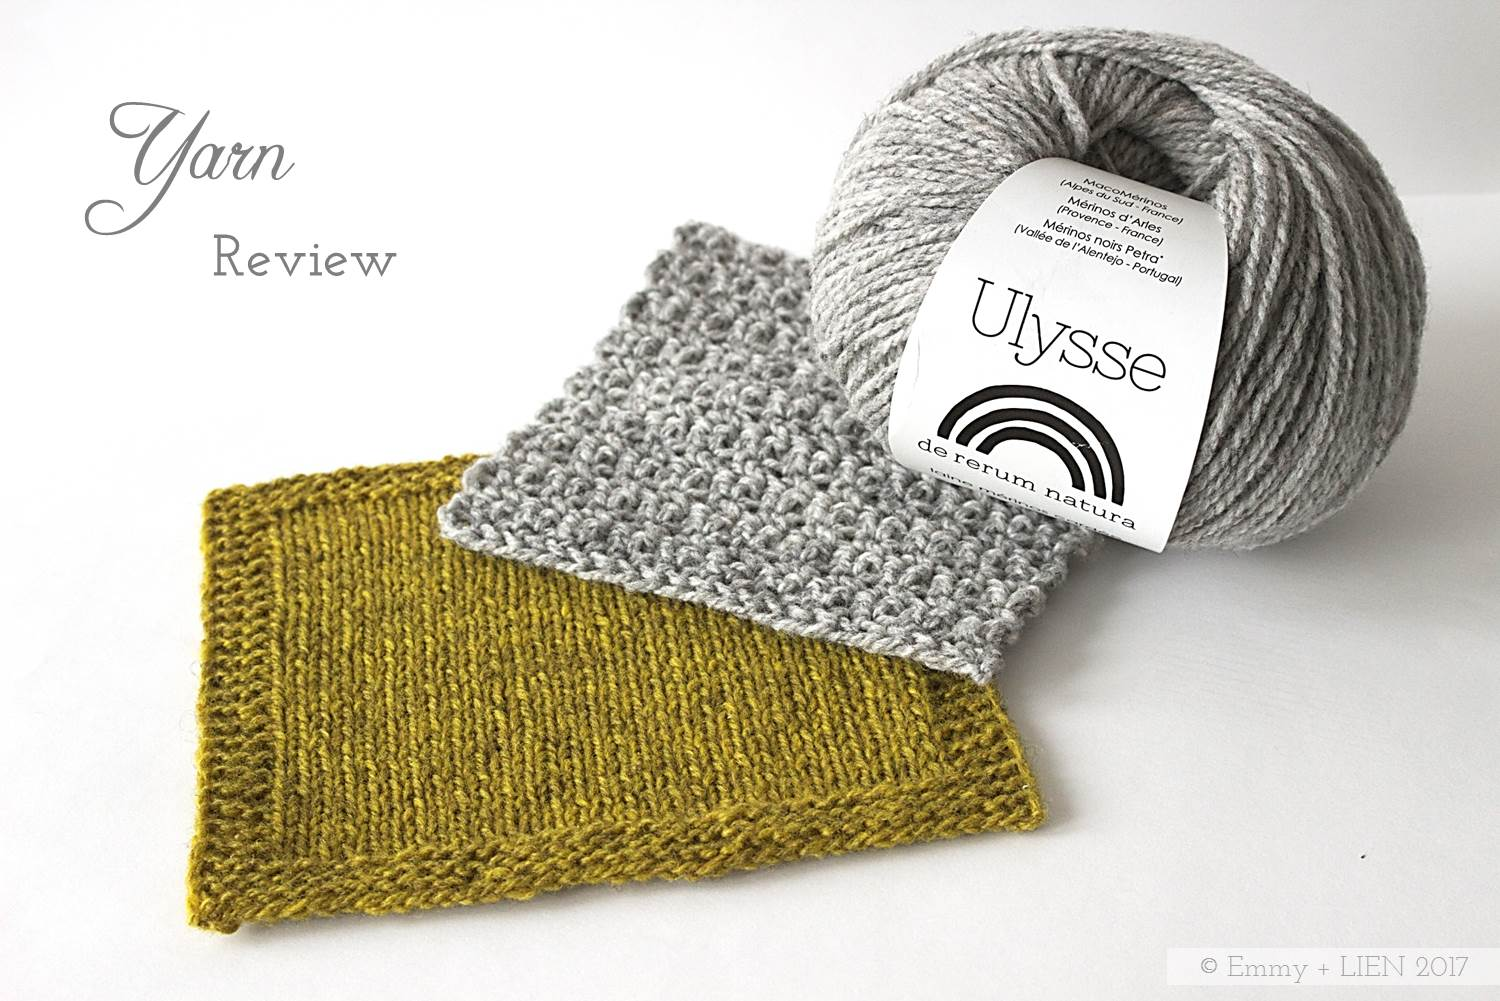 Yarn review: de rerum natura Ulysse